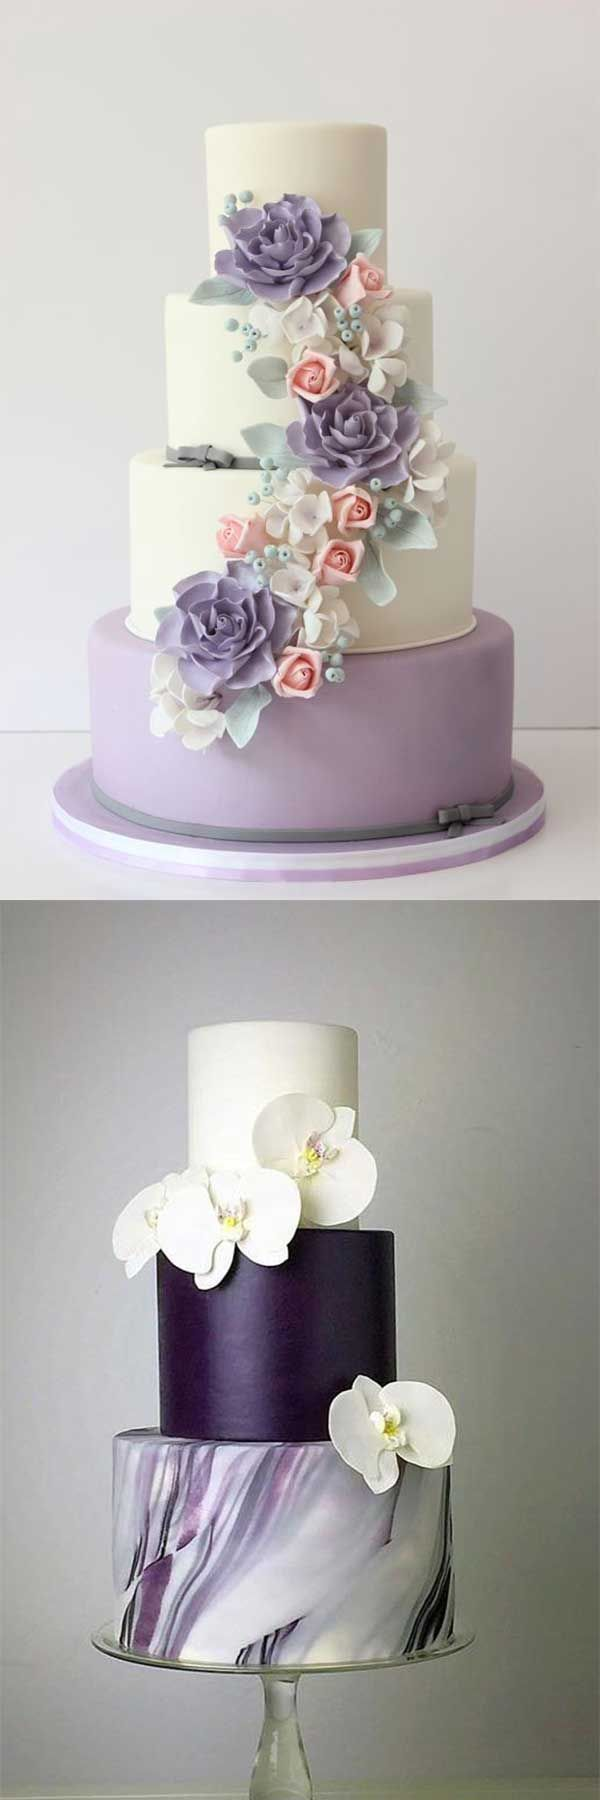 2018 BRIDES FAVORITE WEEDING COLOR: STYLISH SHADE OF PURPLE - Wedding Invites Paper shade of purple wedding cake/ light purple wedding cake/ cheap wedding toppers #weddingcakes